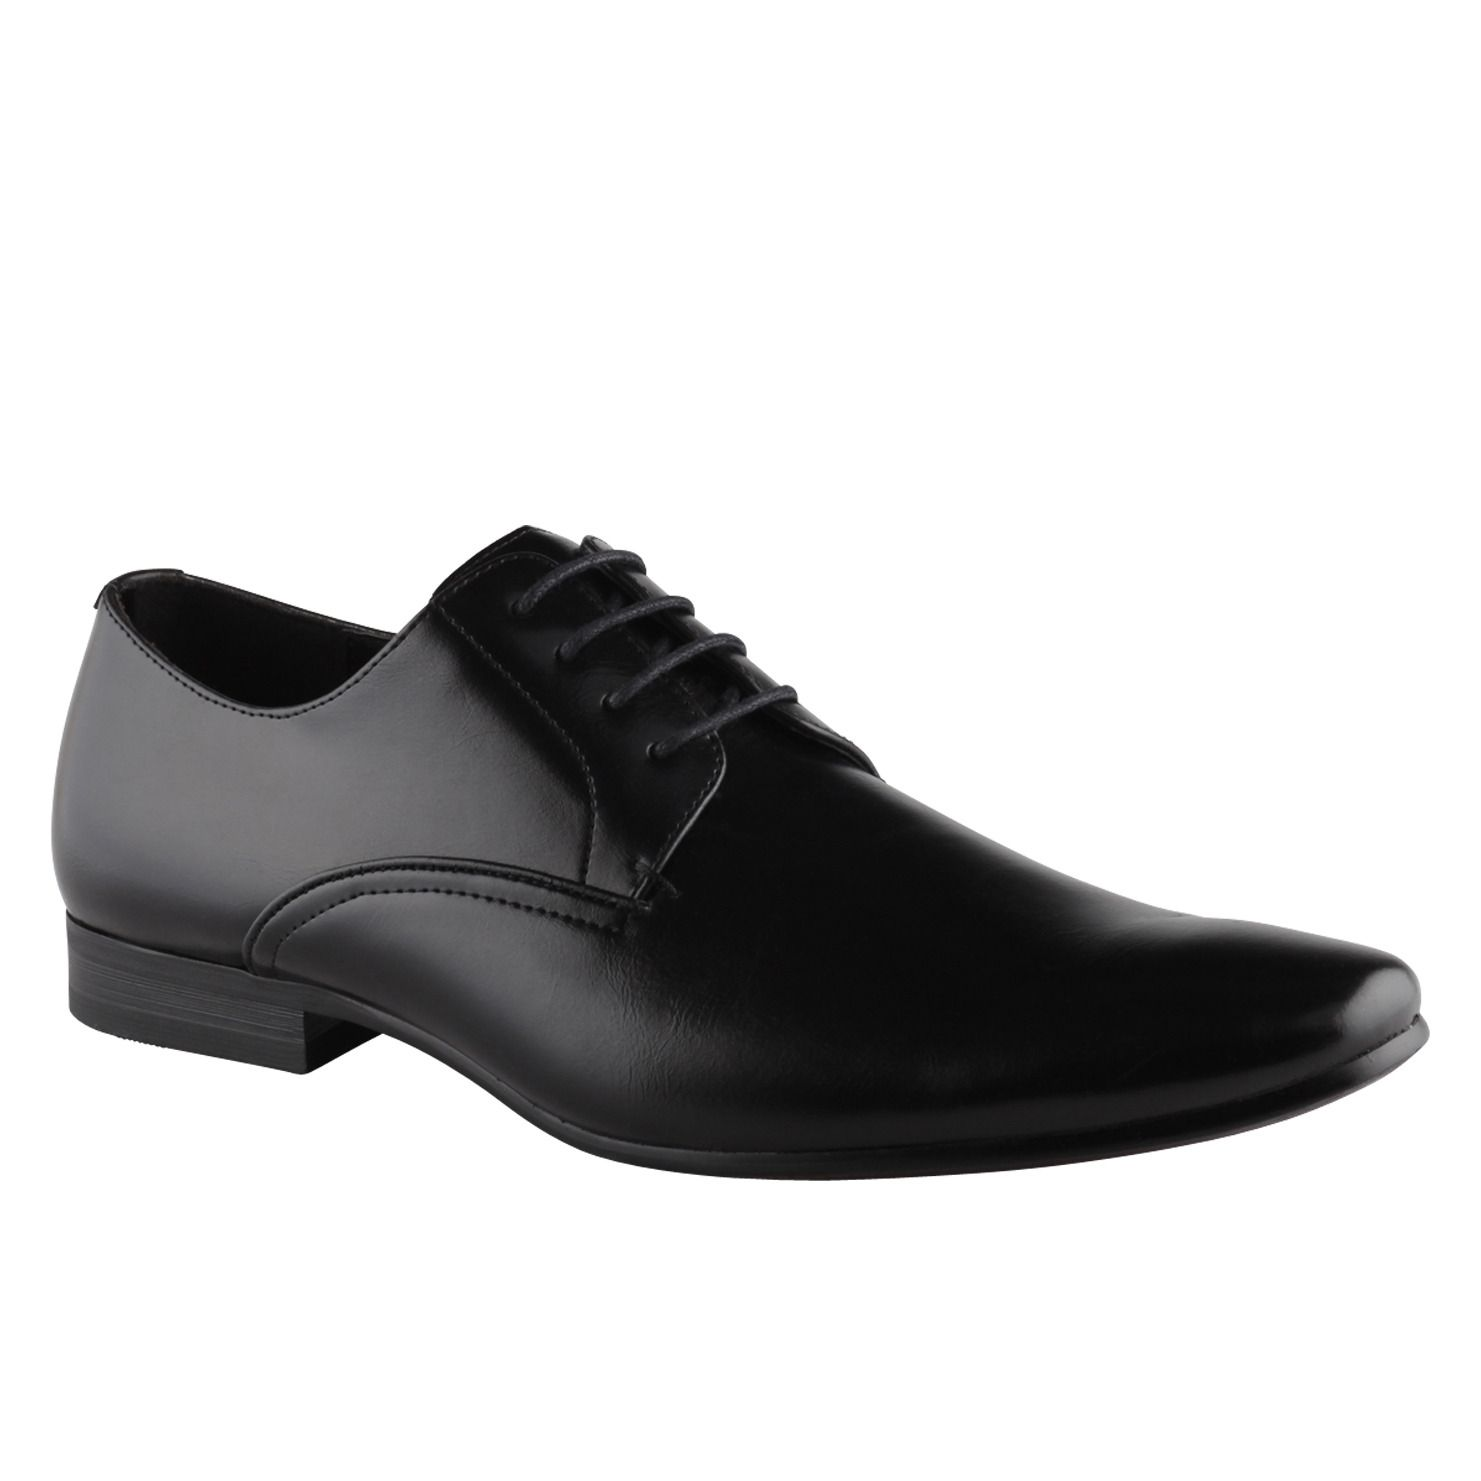 Black dress shoe sale